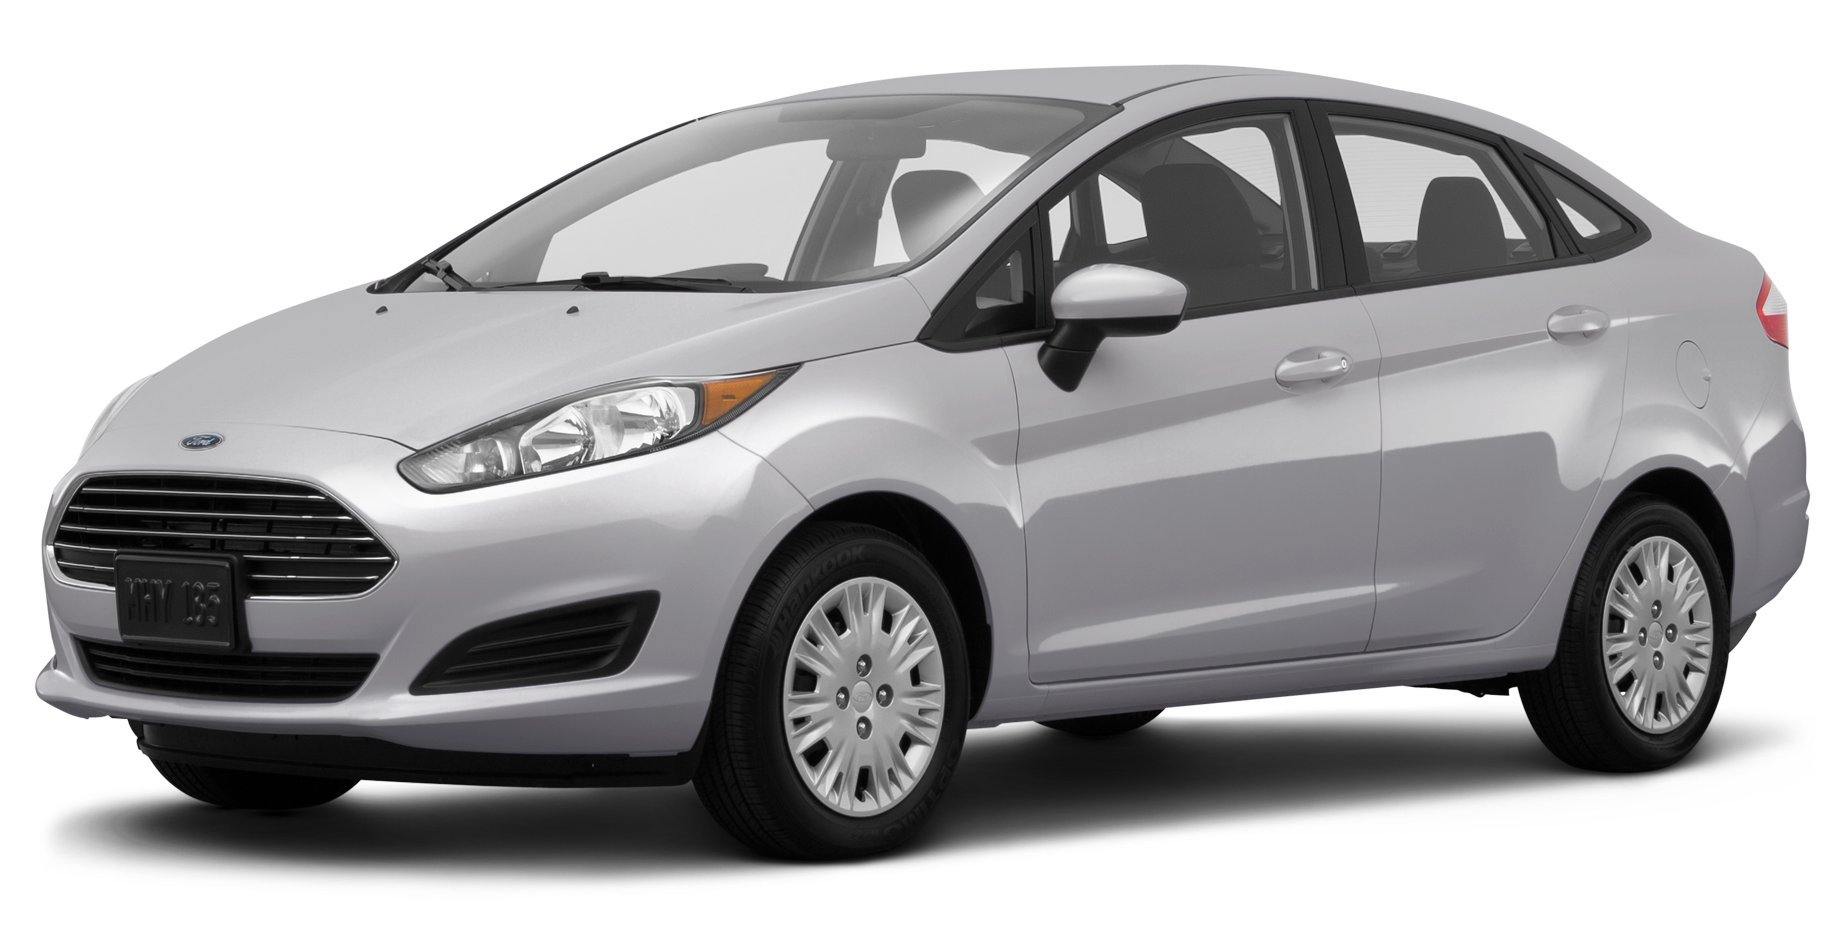 Ford Fiesta Sedan >> Amazon Com 2015 Ford Fiesta Reviews Images And Specs Vehicles